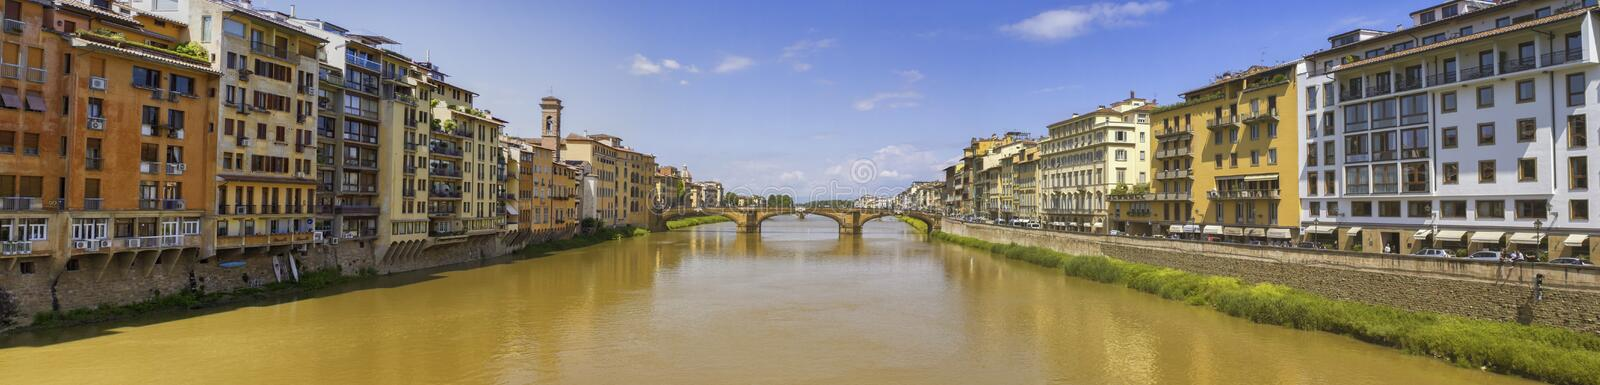 Arno river and old bridge in Florence, Firenze, Italia royalty free stock photos